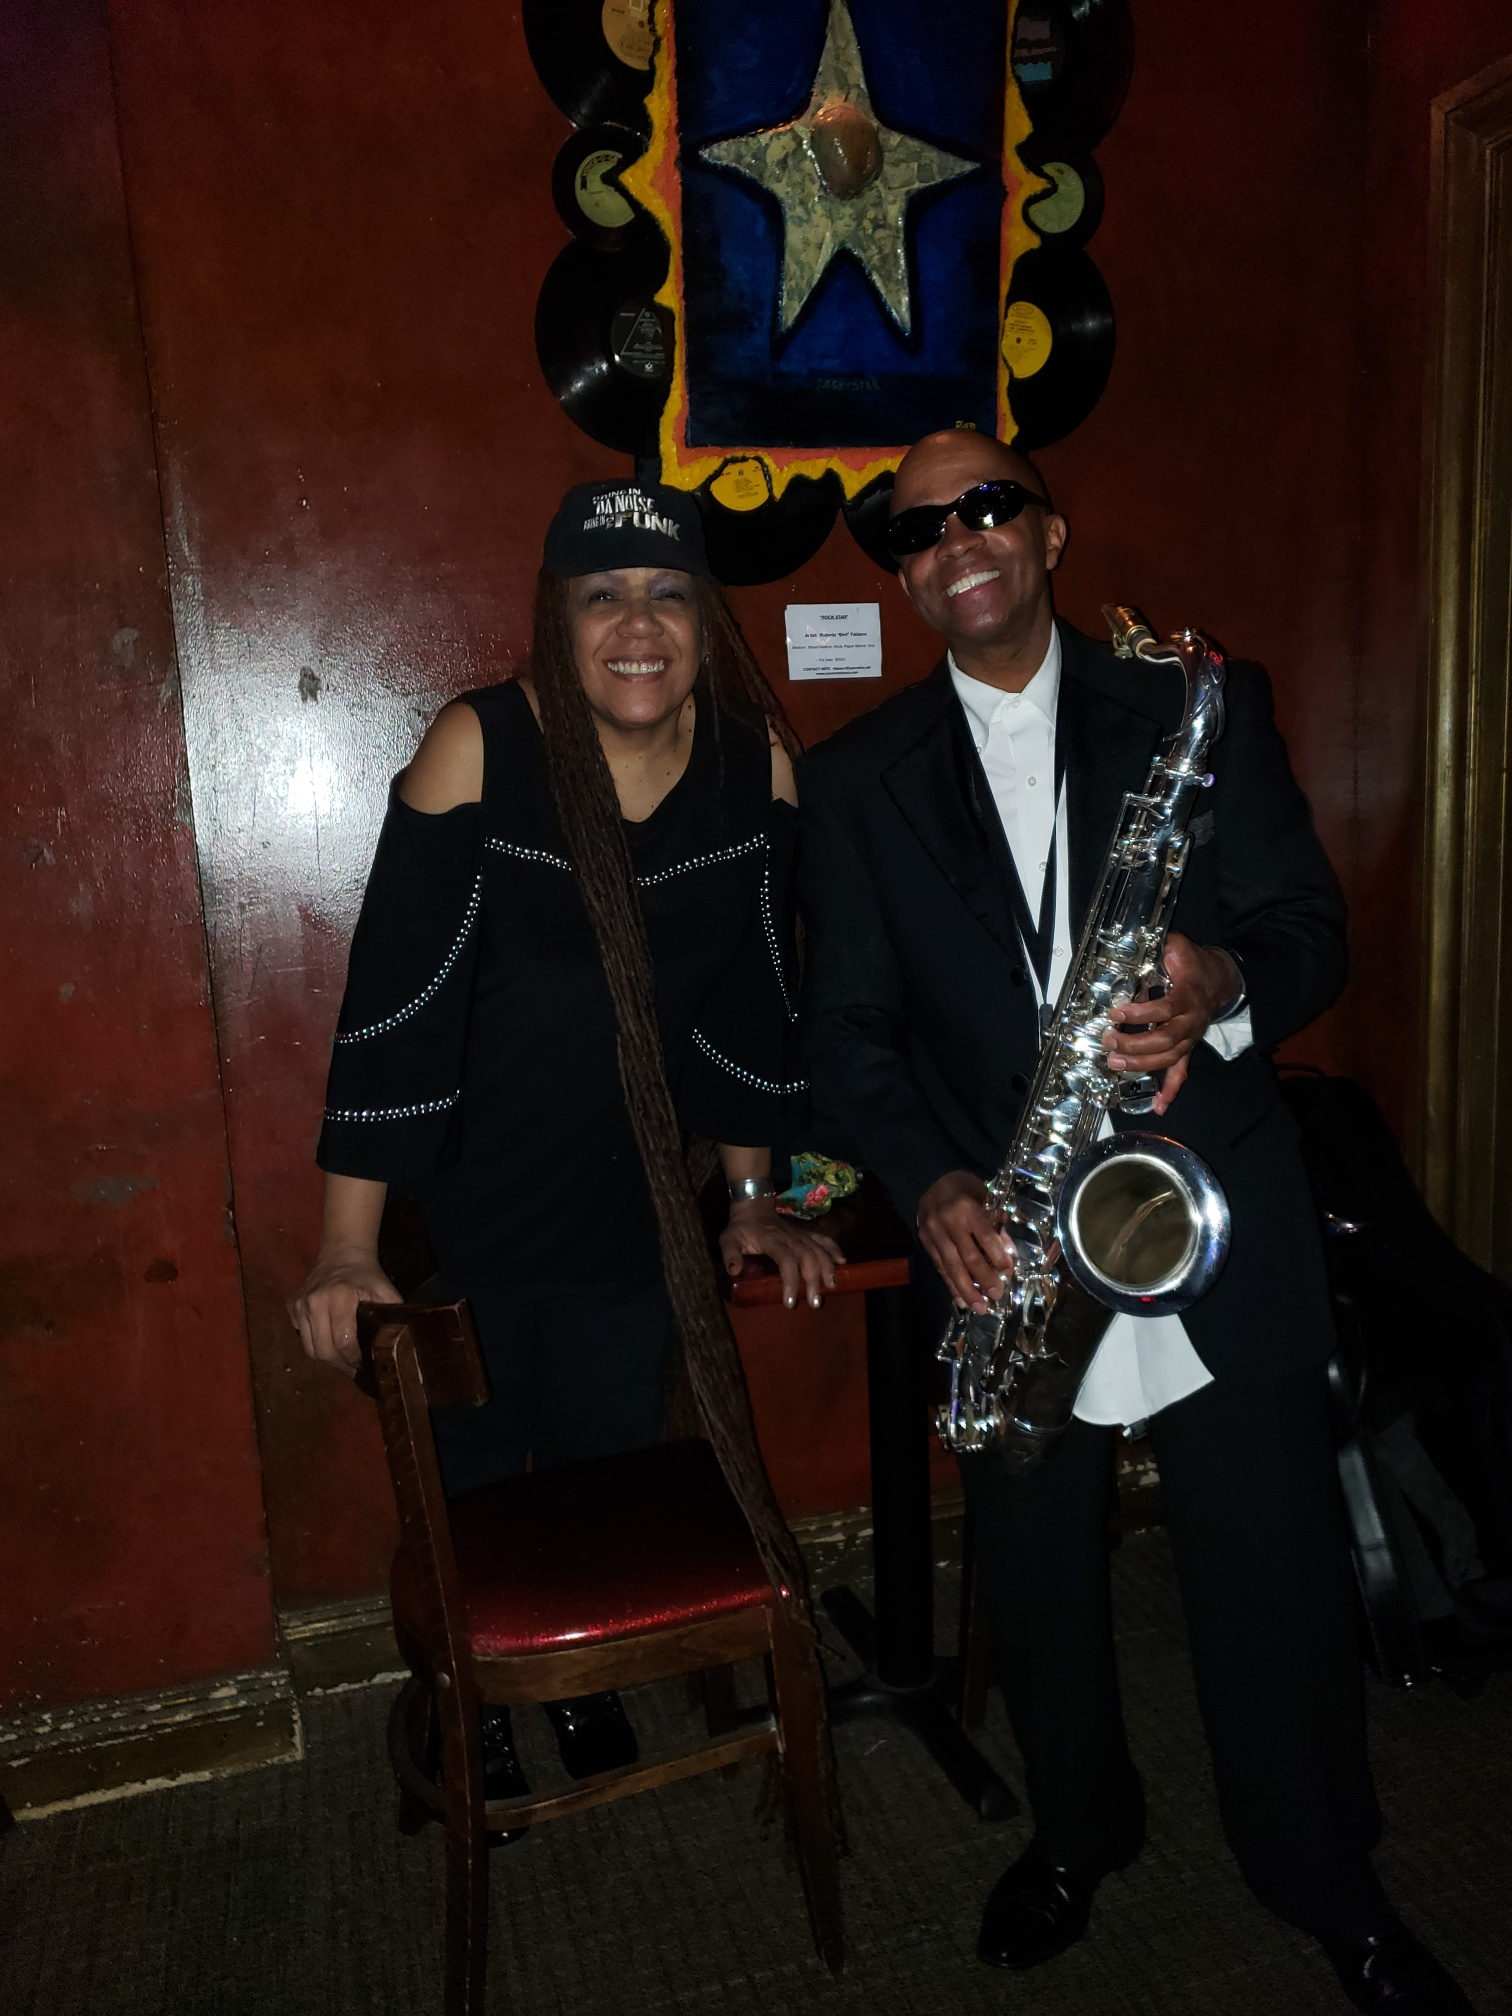 Johnny Long playing Tenor Sax at the Pro Jam with Felicia M. Collins guitarist for the David Letterman, Late Show Band in New York, NY